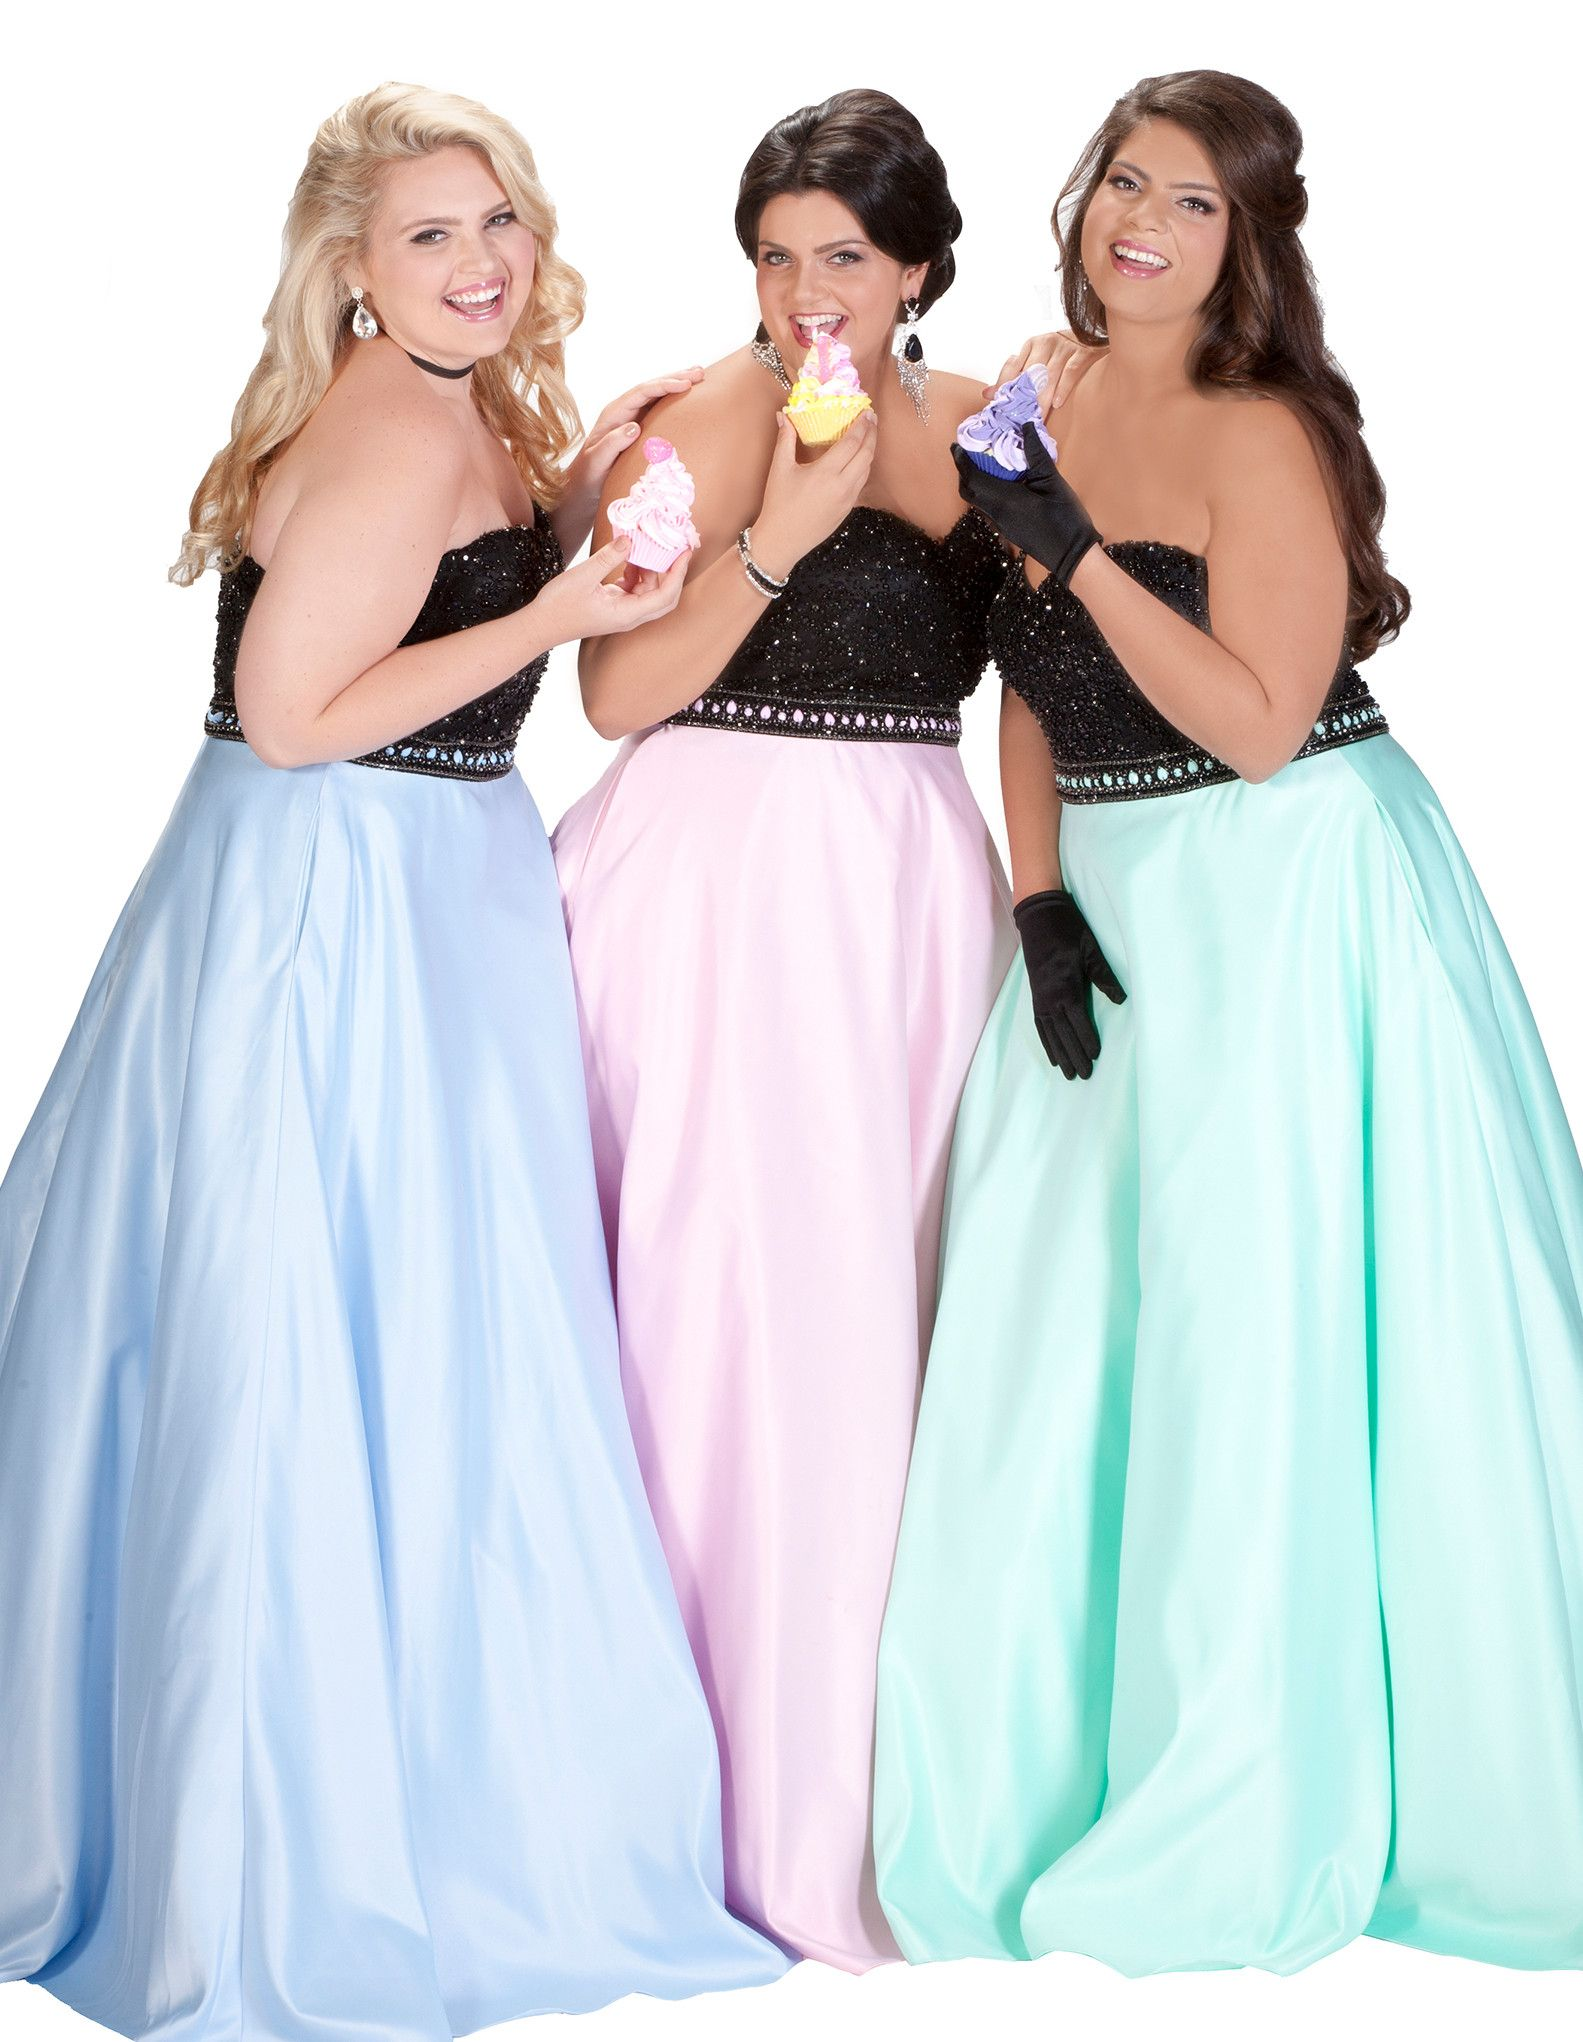 Shop Sydneyu0027s Closet Stylish Plus Size Special Occasion Dresses. Look  Gorgeous For Wedding, Prom